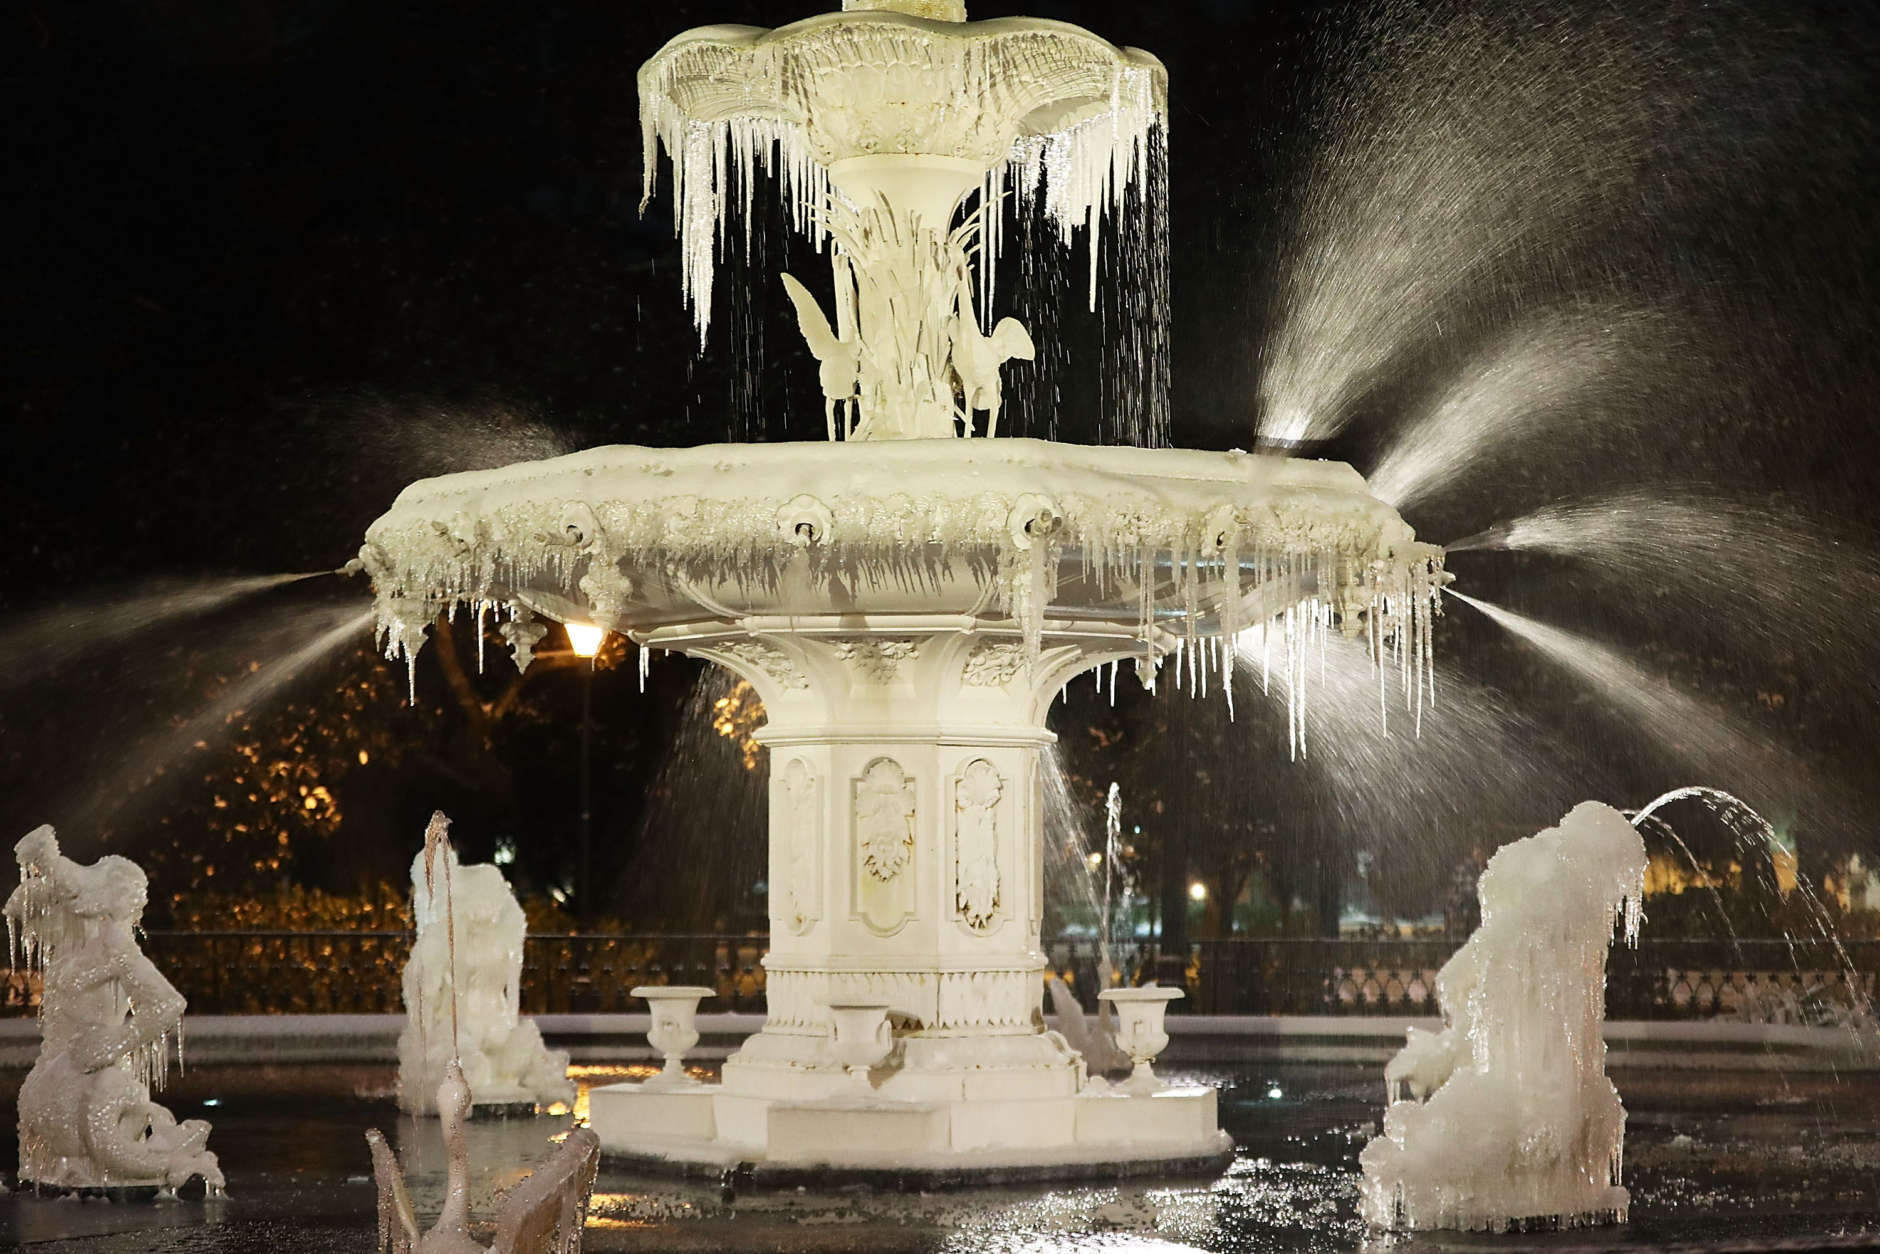 SAVANNAH, GA - JANUARY 04:  Ice forms on the water fountain in Forsyth Park as snow and cold weather blanket the area on January 4, 2018 in Savannah, Georgia. The extreme winter storm pummeled the Southeastern United States and is moving towards the east coast with frigid temperatures and heavy wind and snow.  (Photo by Joe Raedle/Getty Images)